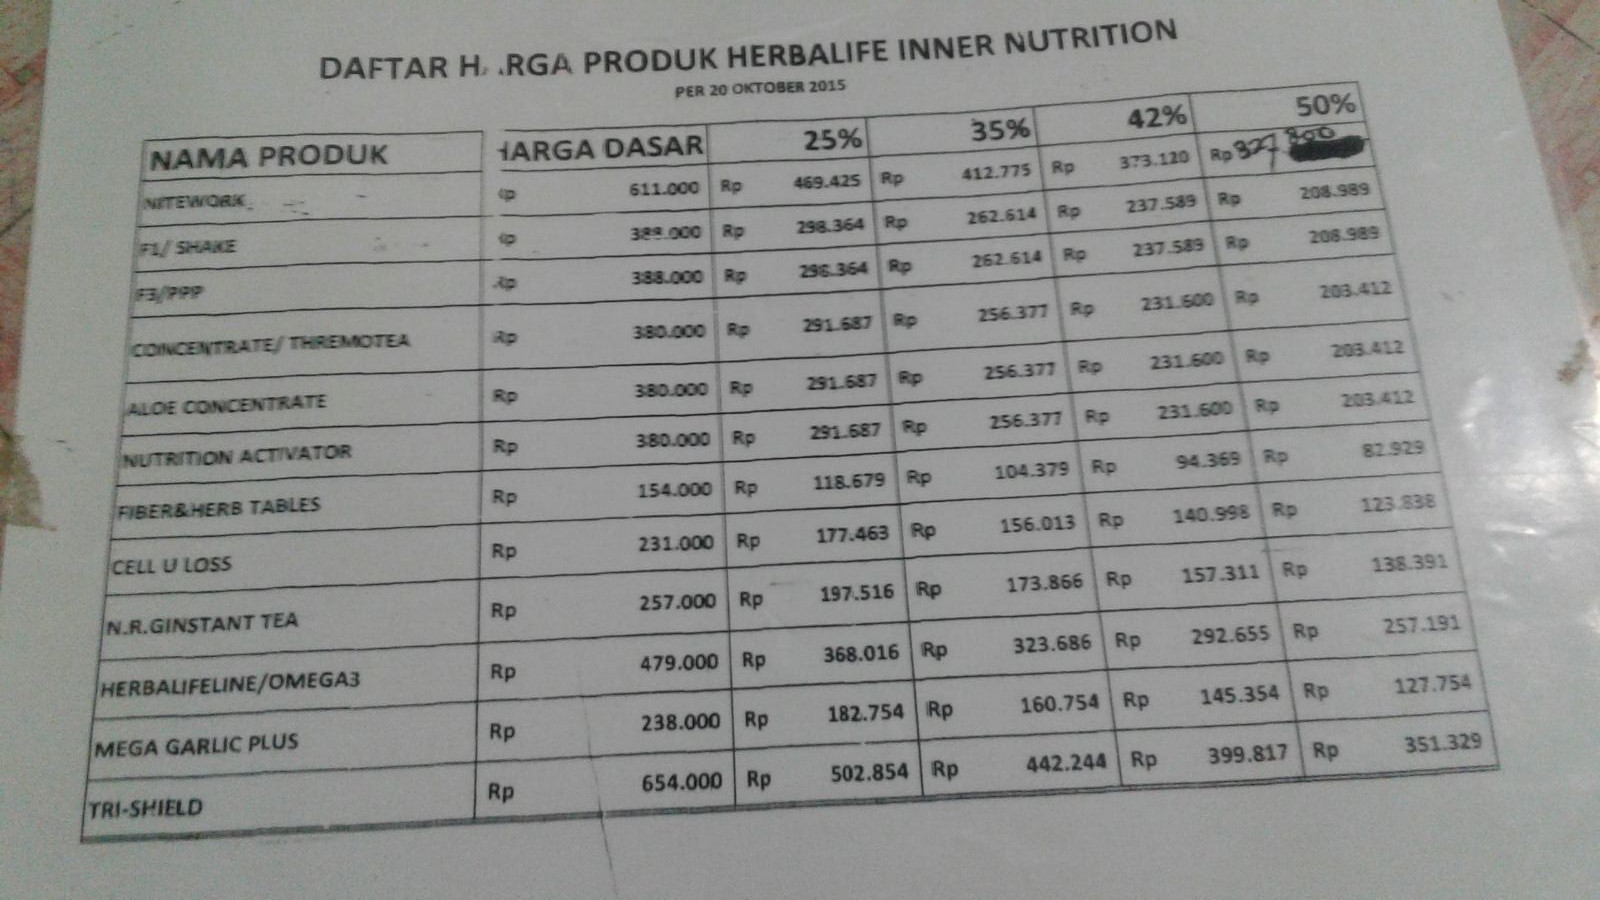 Harga Herbalife F1 Nutritional Shake Mix - Nutrition Ftempo